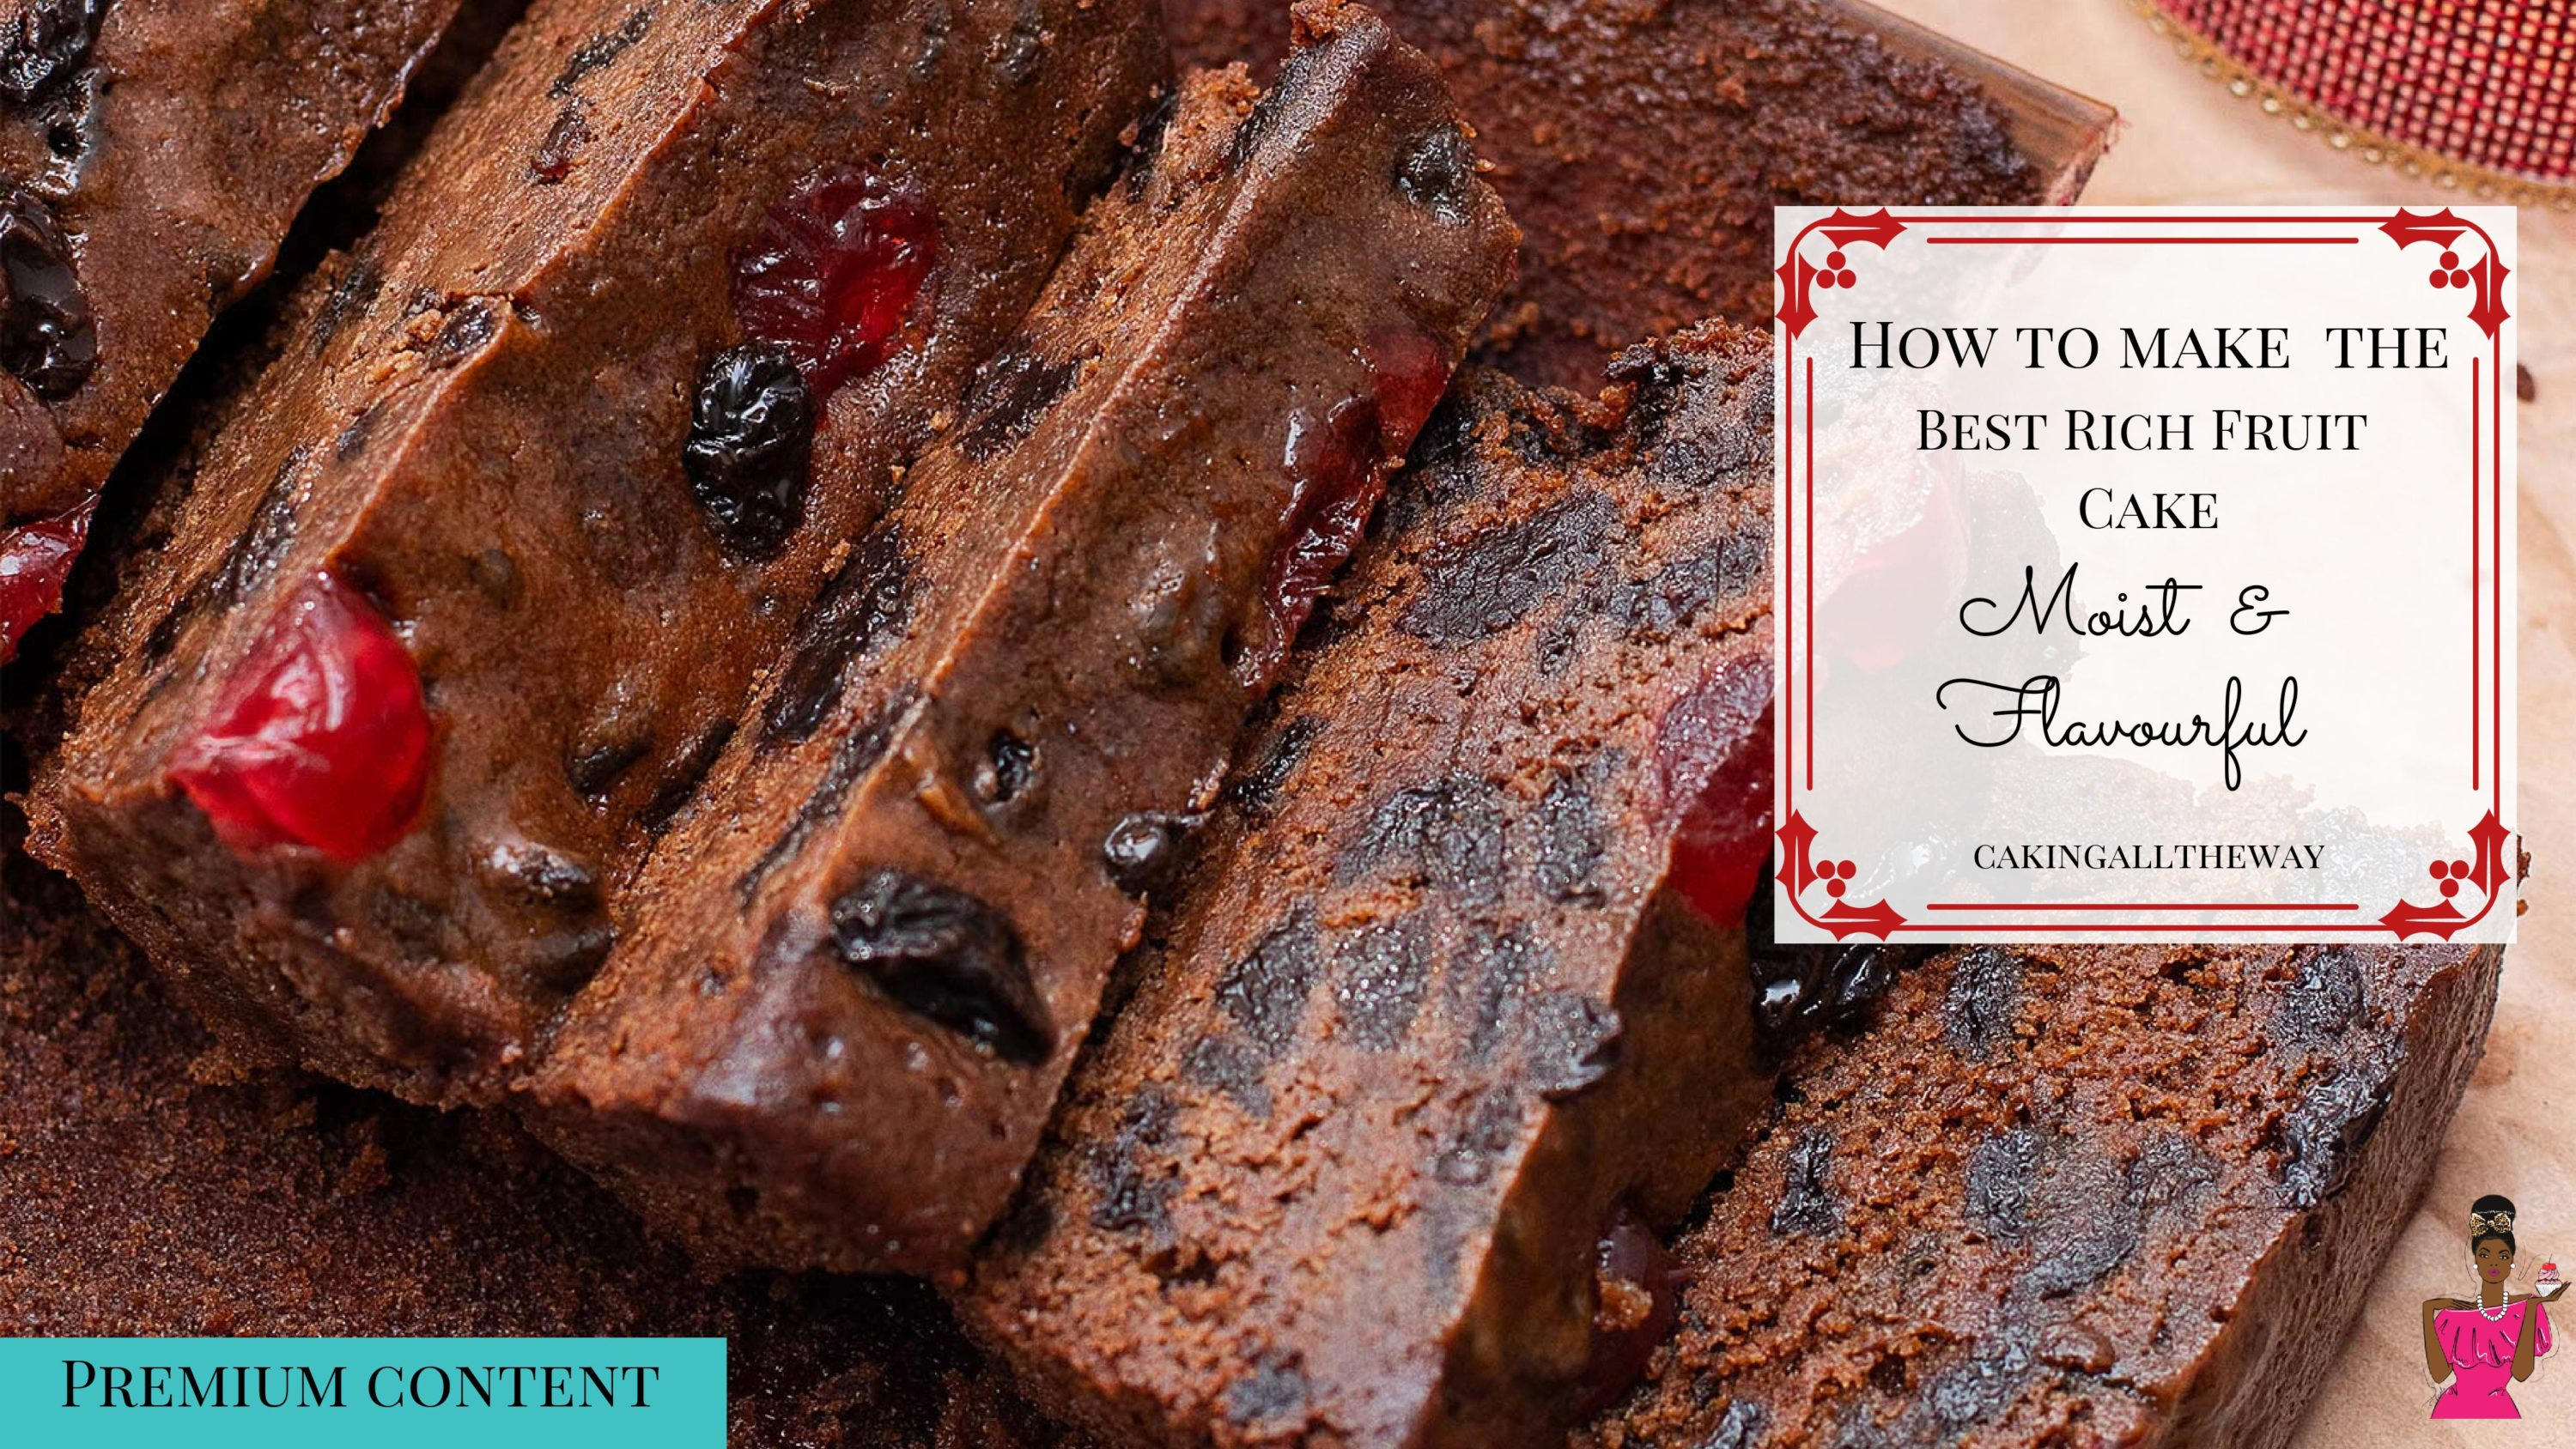 The Best Rich Fruit Cake Recipe